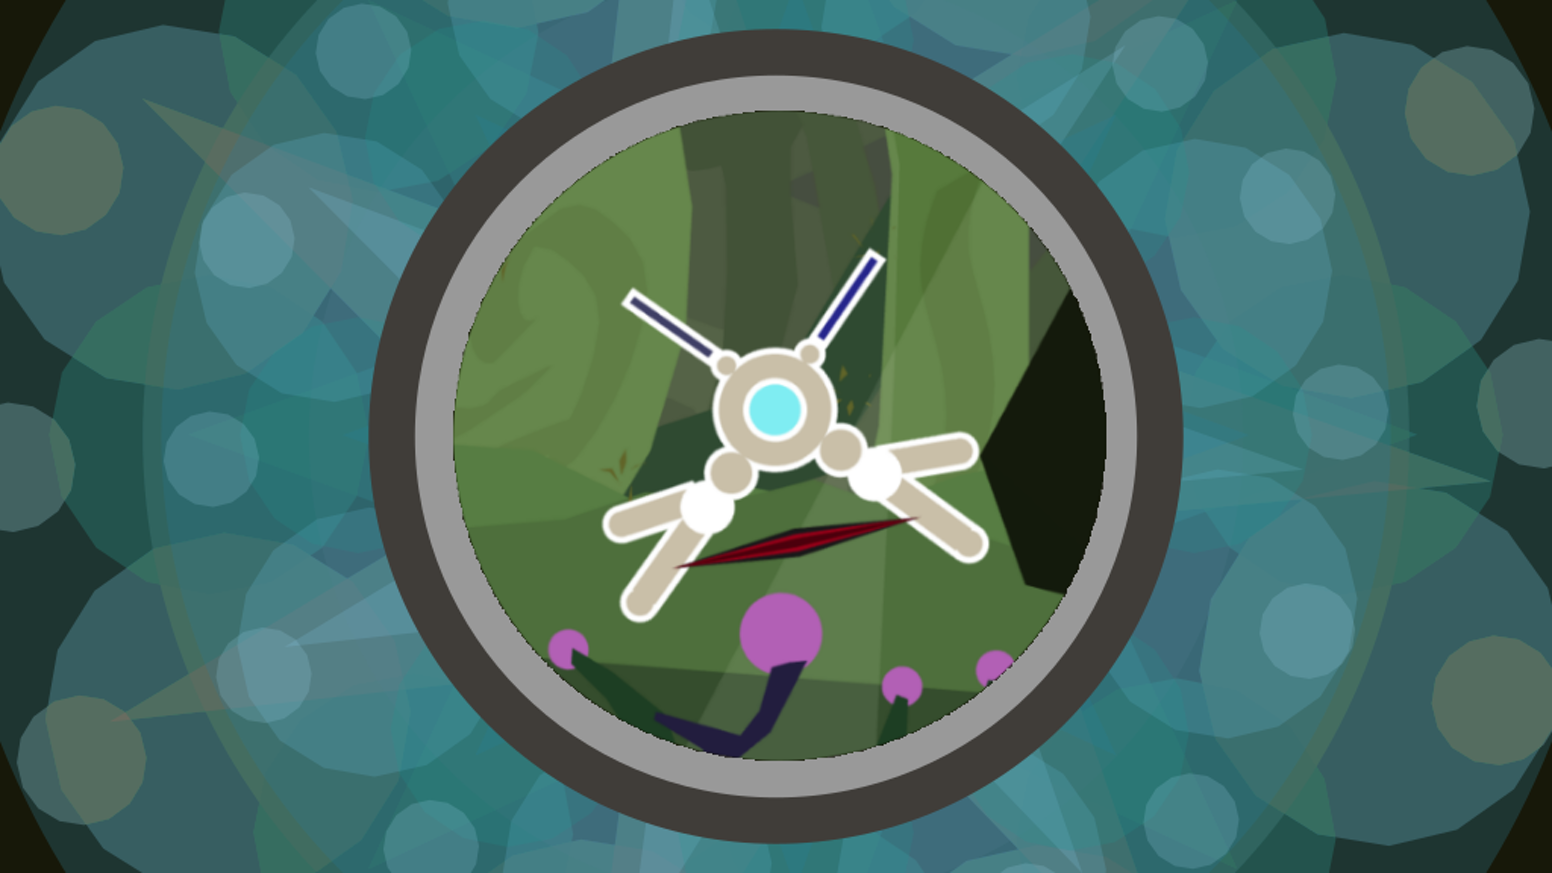 Build creatures and weave their brains with simple biological neural networks to explore a player-created ocean ecosystem.